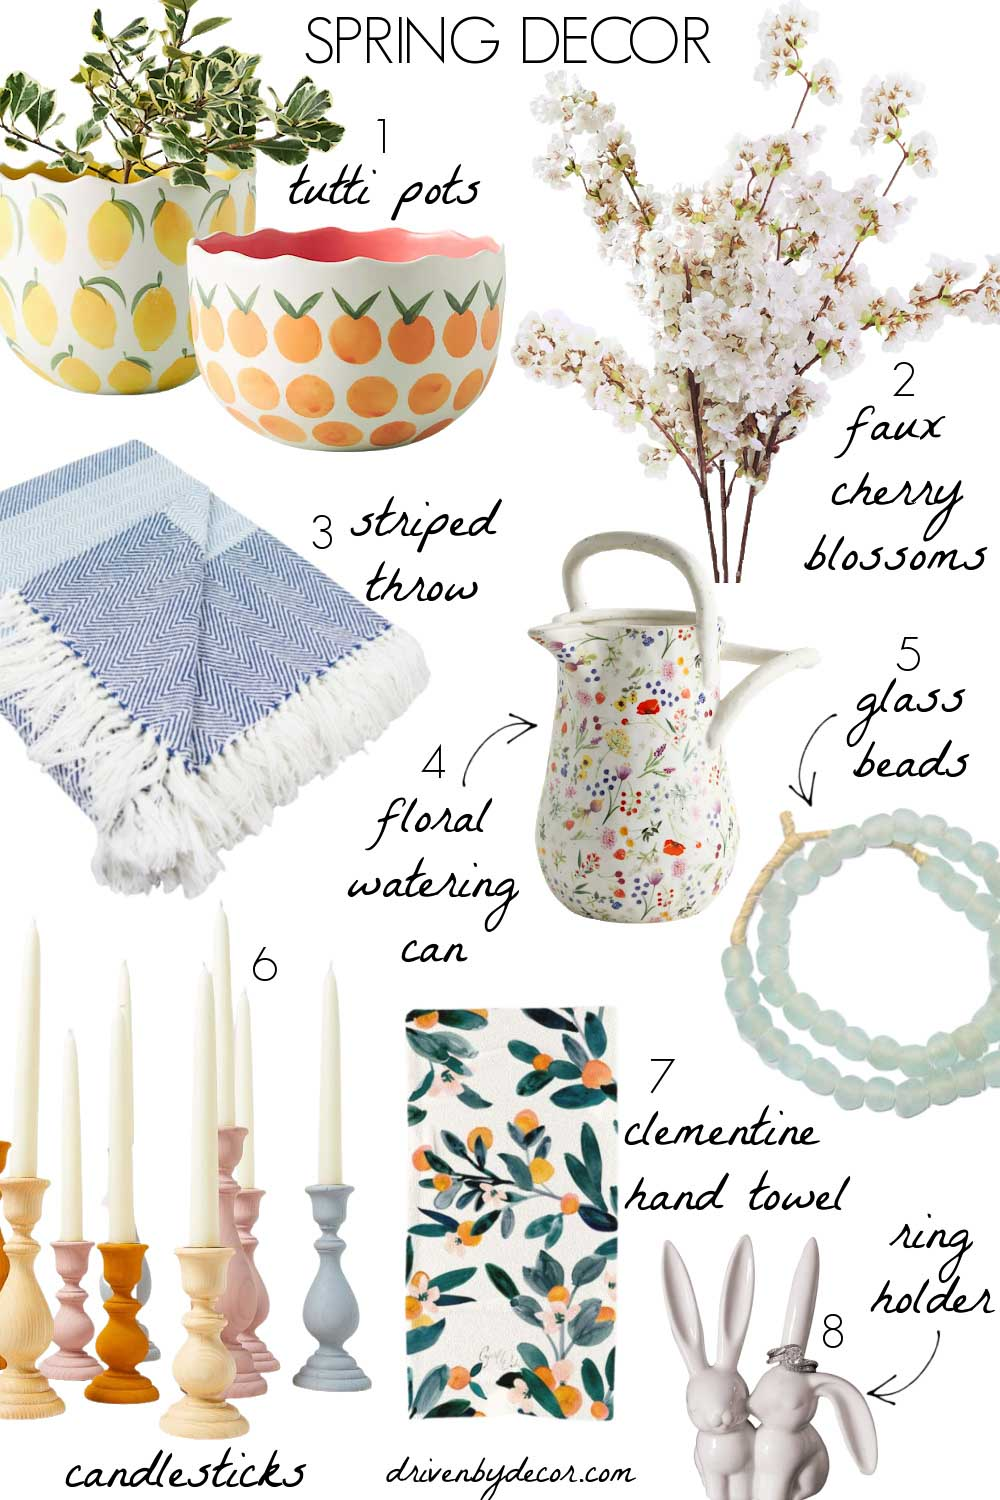 My favorite spring home decor accessories!